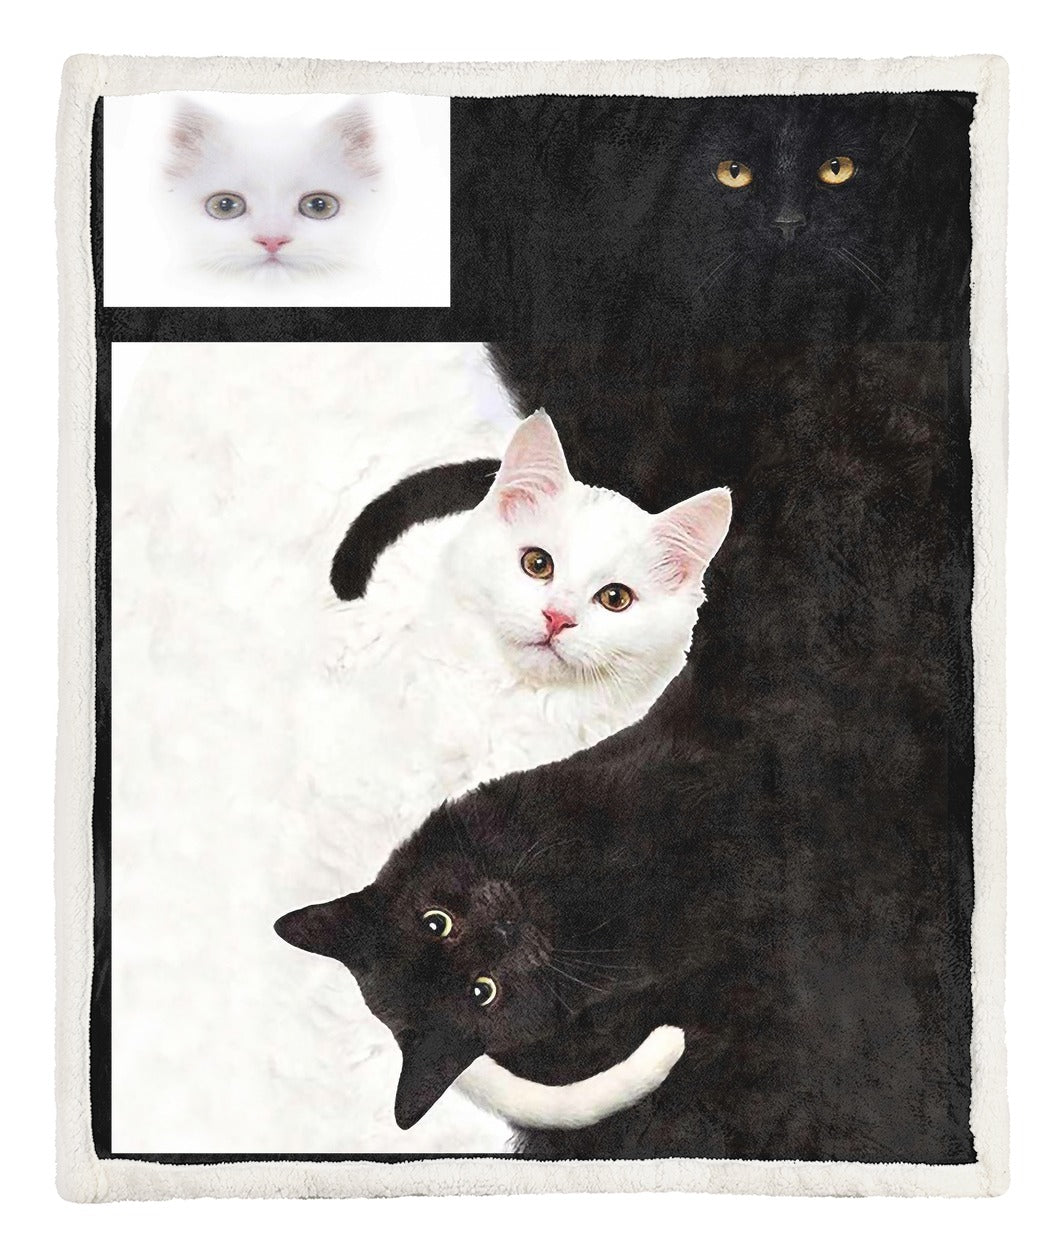 black-and-white-cat-bedding-set-throw-blanket-tab050121